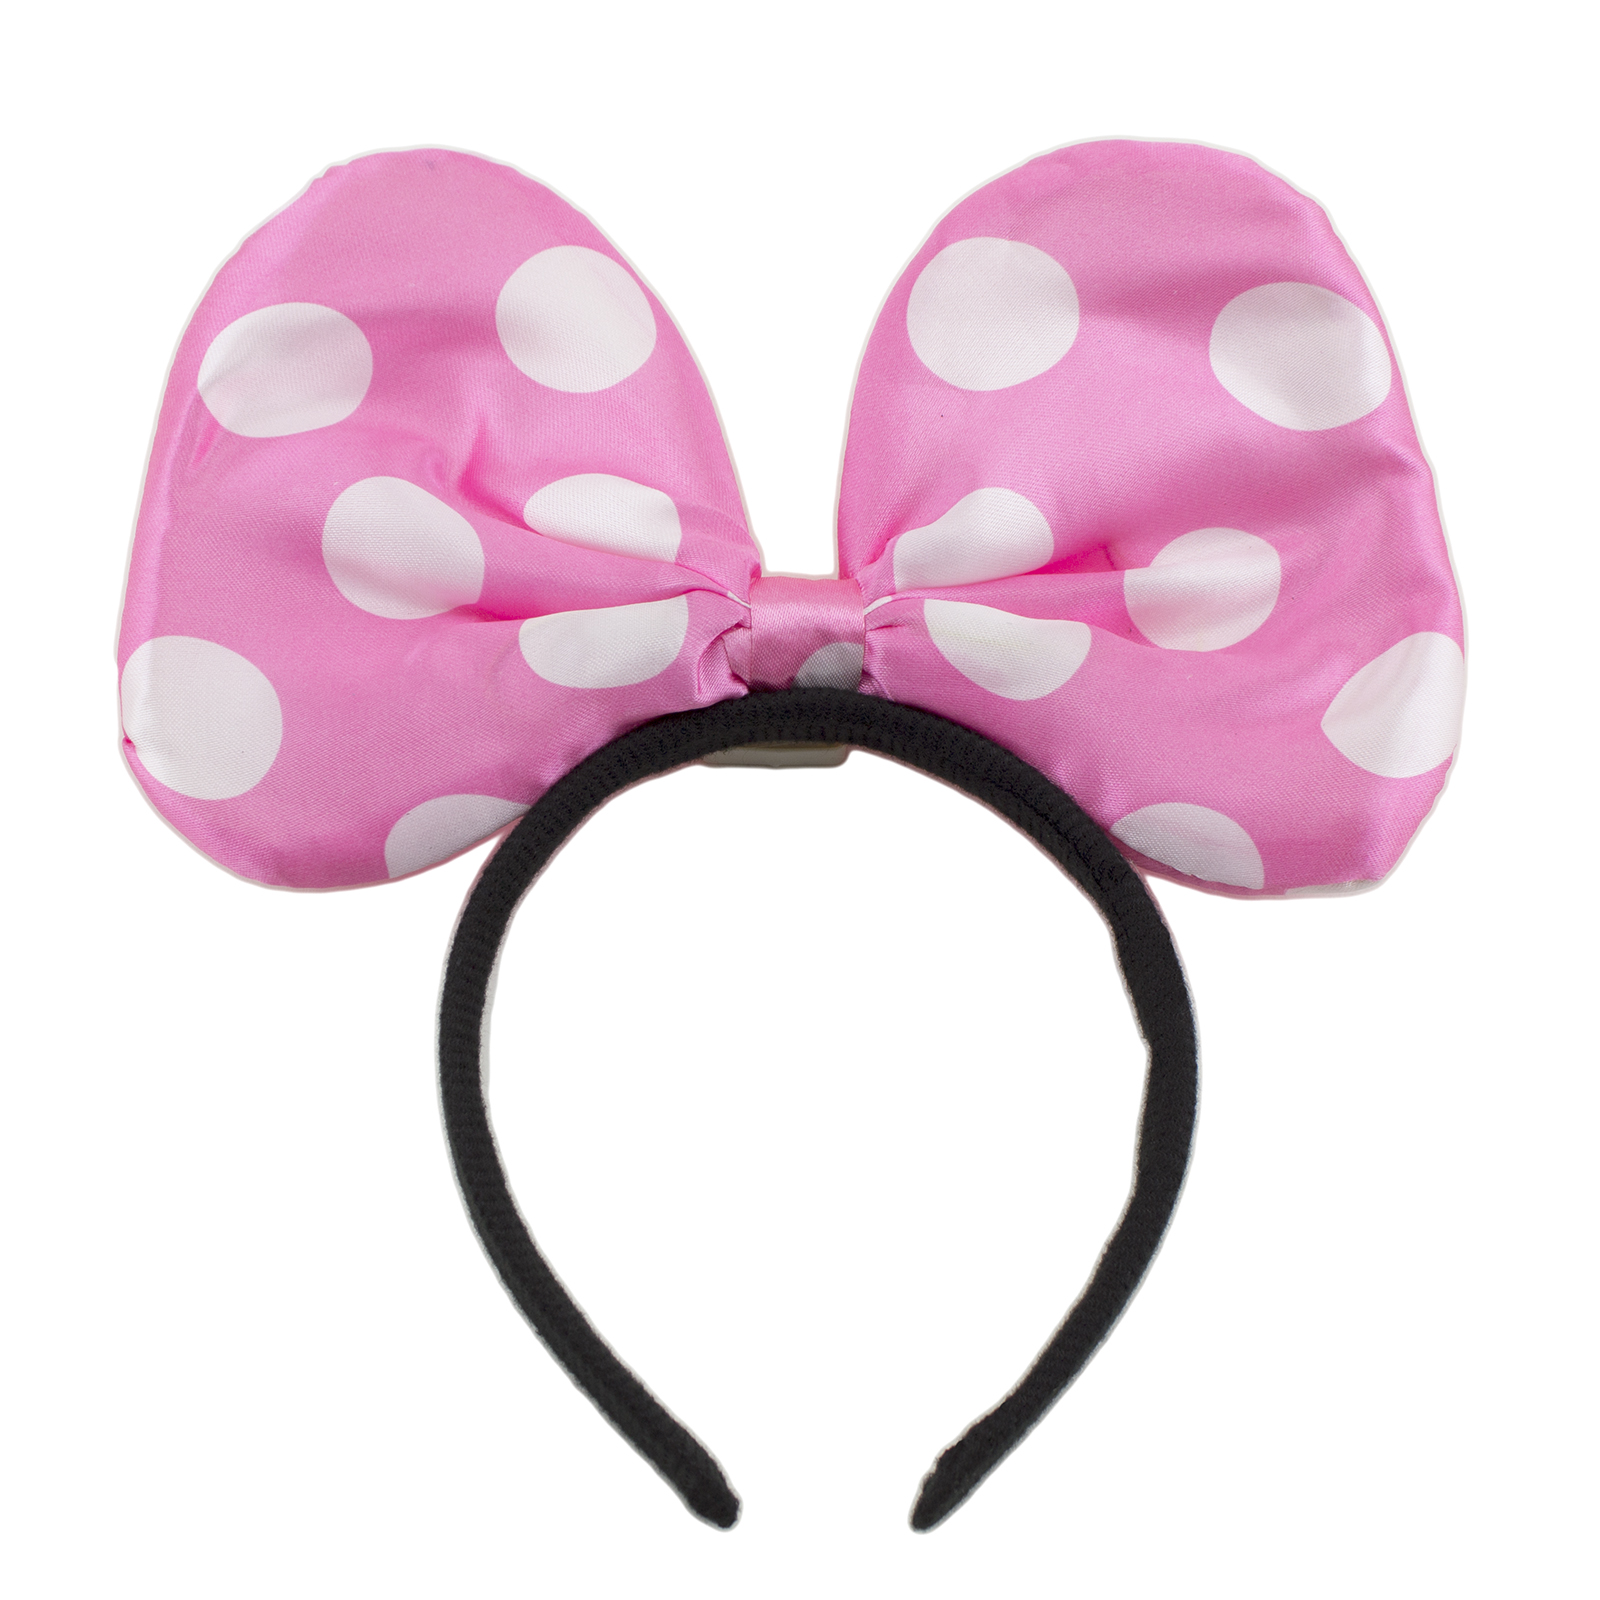 Minnie Mouse Pink Ears Light Up Led Polkadotted Bow Headband Costume